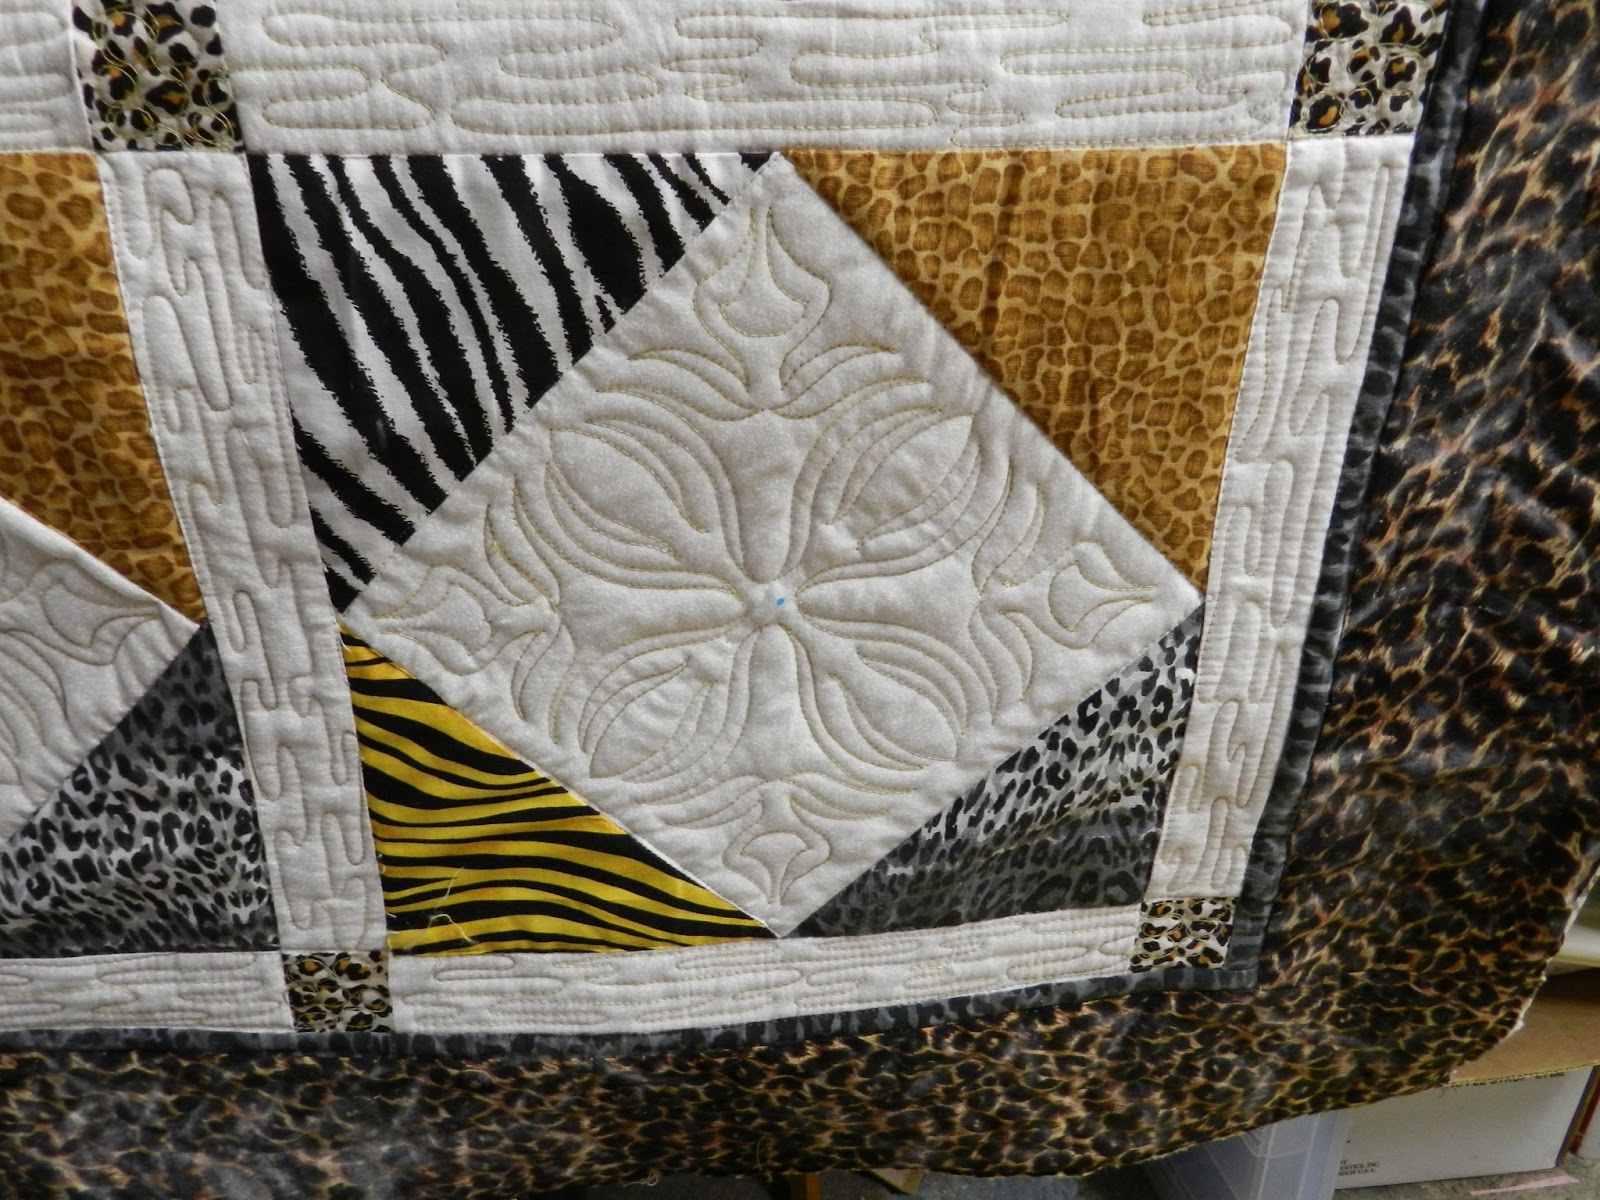 Dinah S Quilts And Embroidery Wild Animal Print Quilt